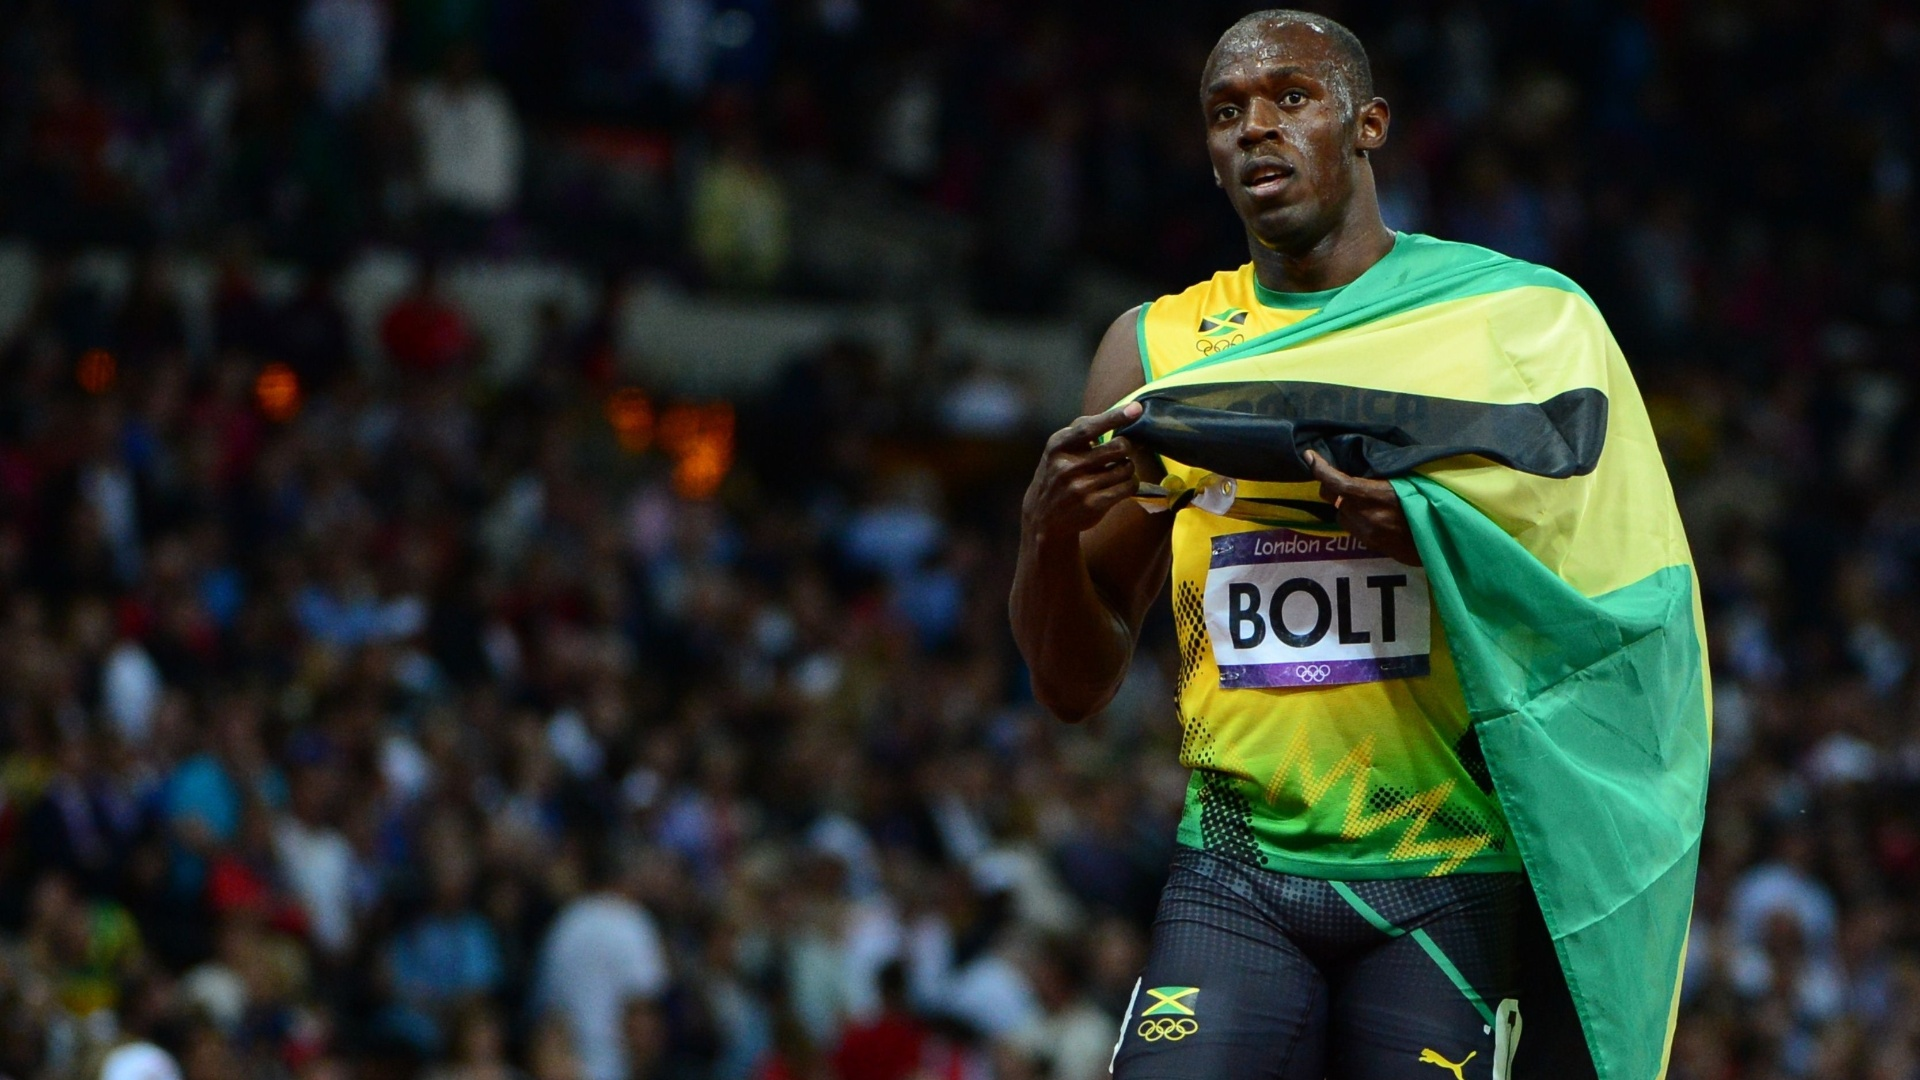 Usain Bolt carrega bandeira jamaicana aps se tornar bicampeo olmpico dos 100 m rasos